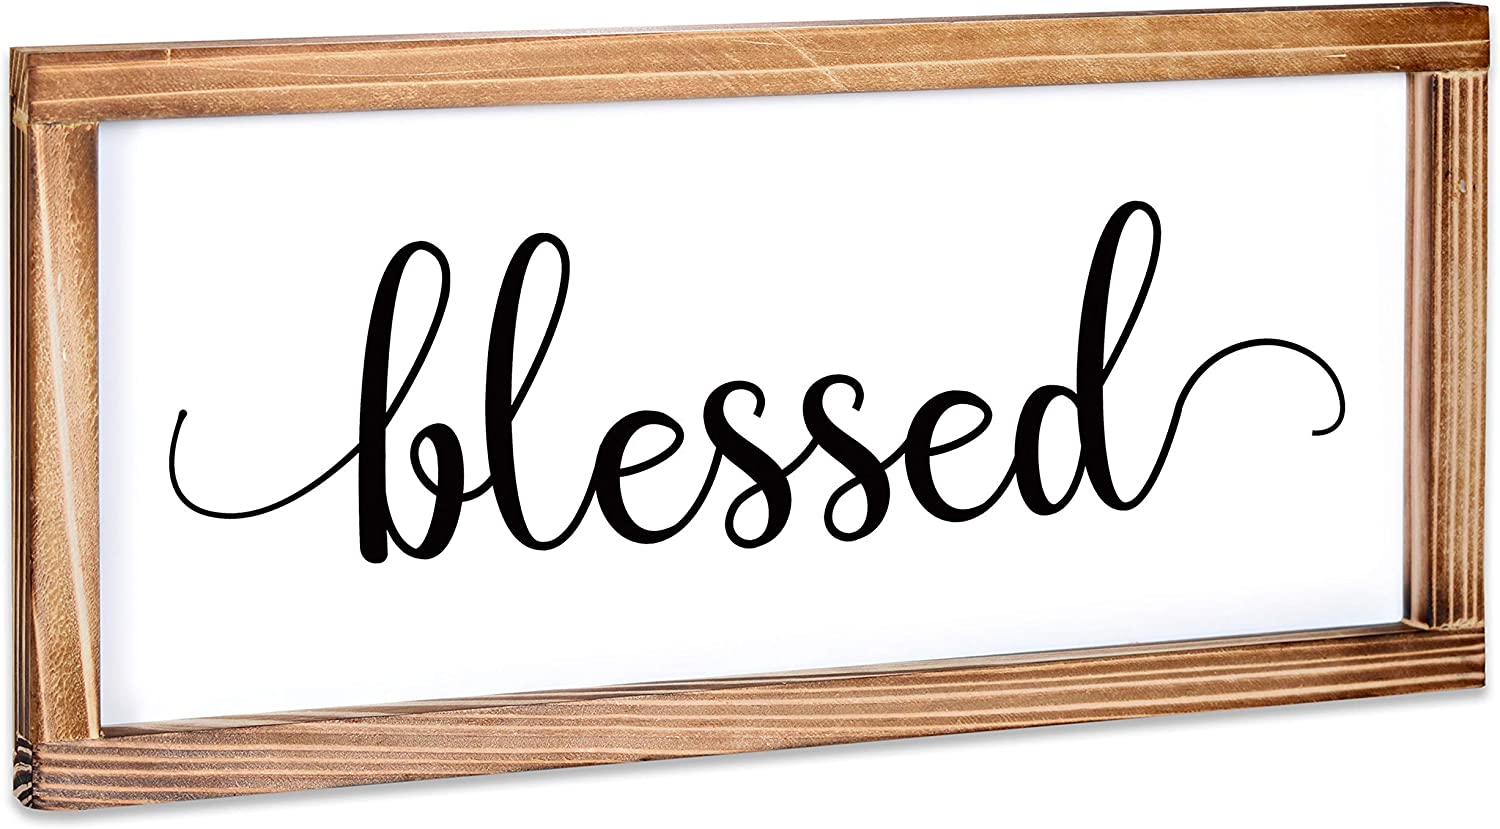 Blessed Sign - Rustic Farmhouse Decor for the Home Sign - Wall Decorations for Living Room, Modern Farmhouse Wall Decor, Rustic Home Decor, Blessed Farmhouse Sign with Solid Wood Frame - 8x17 Inches